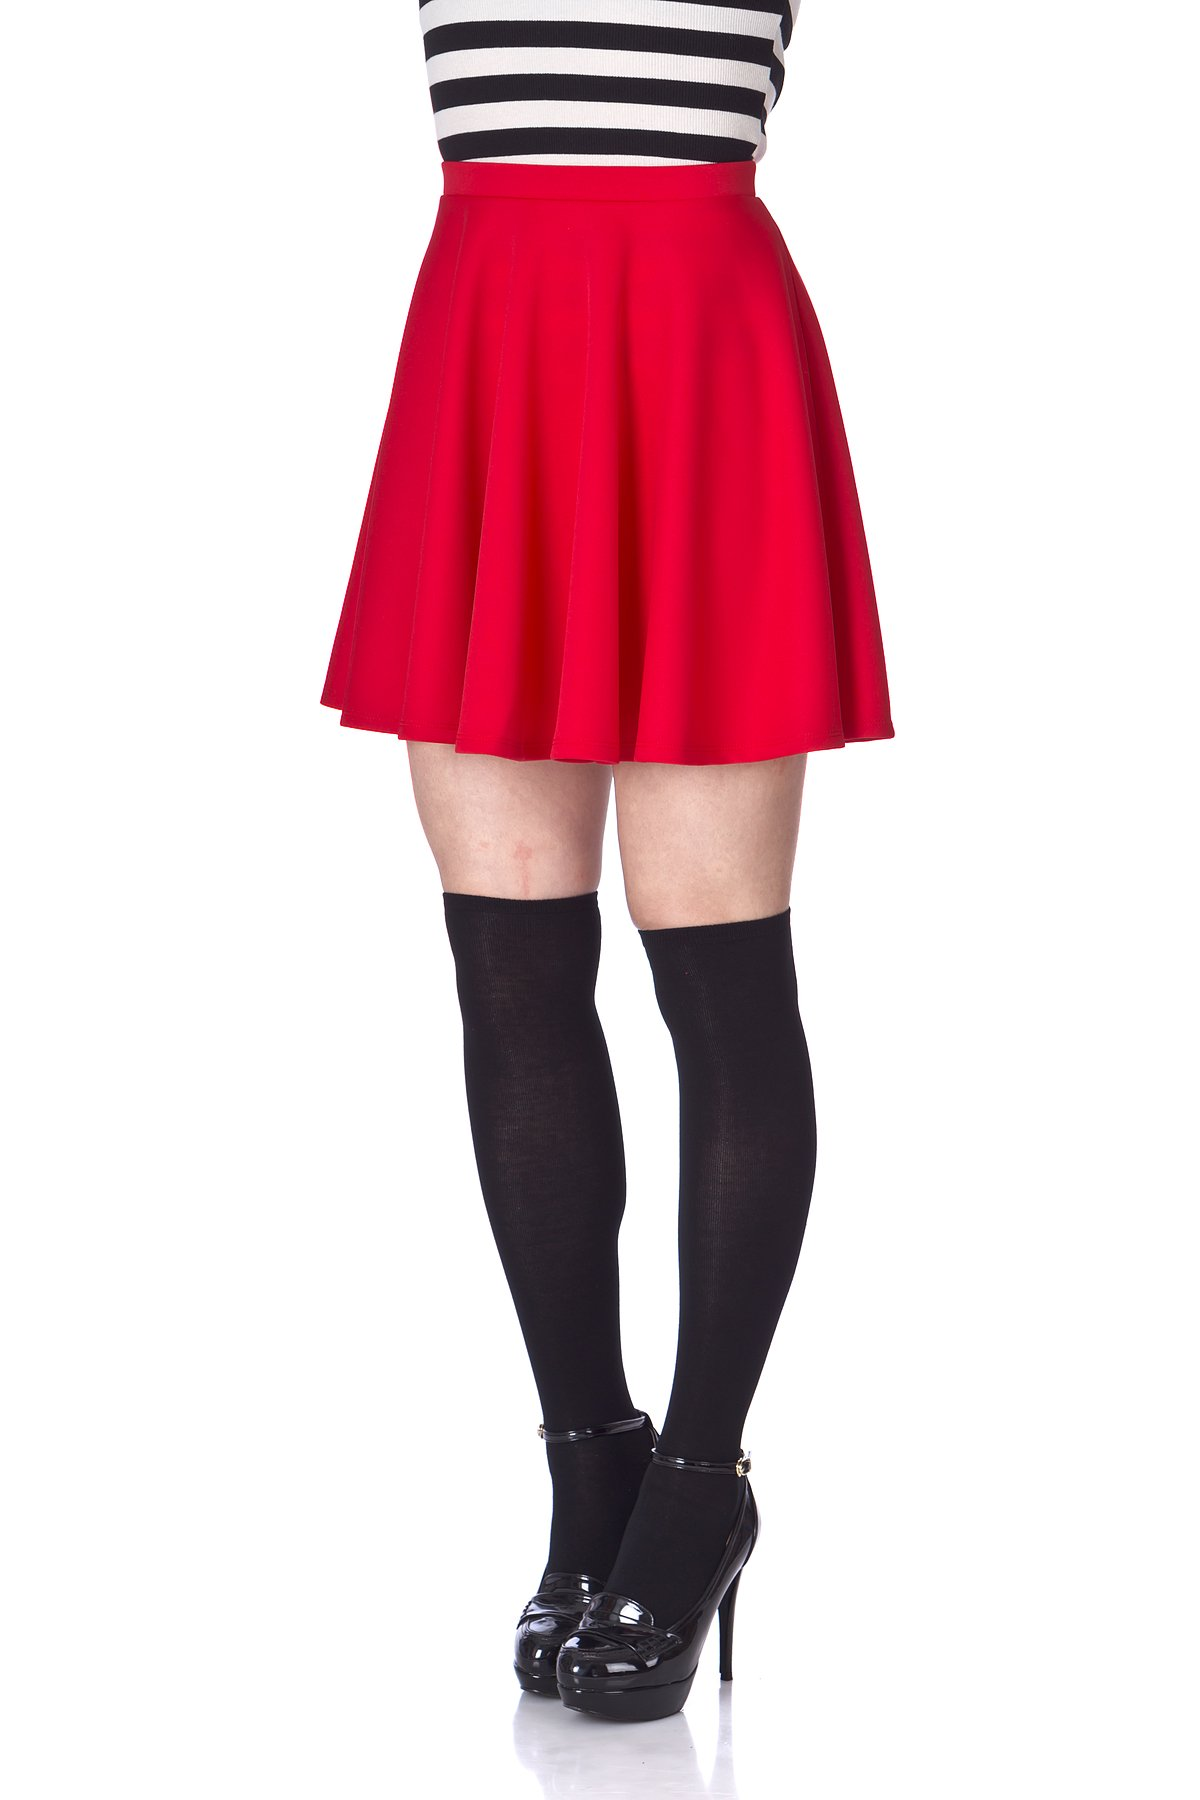 Flouncy High Waist A line Full Flared Circle Swing Dance Party Casual Skater Short Mini Skirt Red 06 2